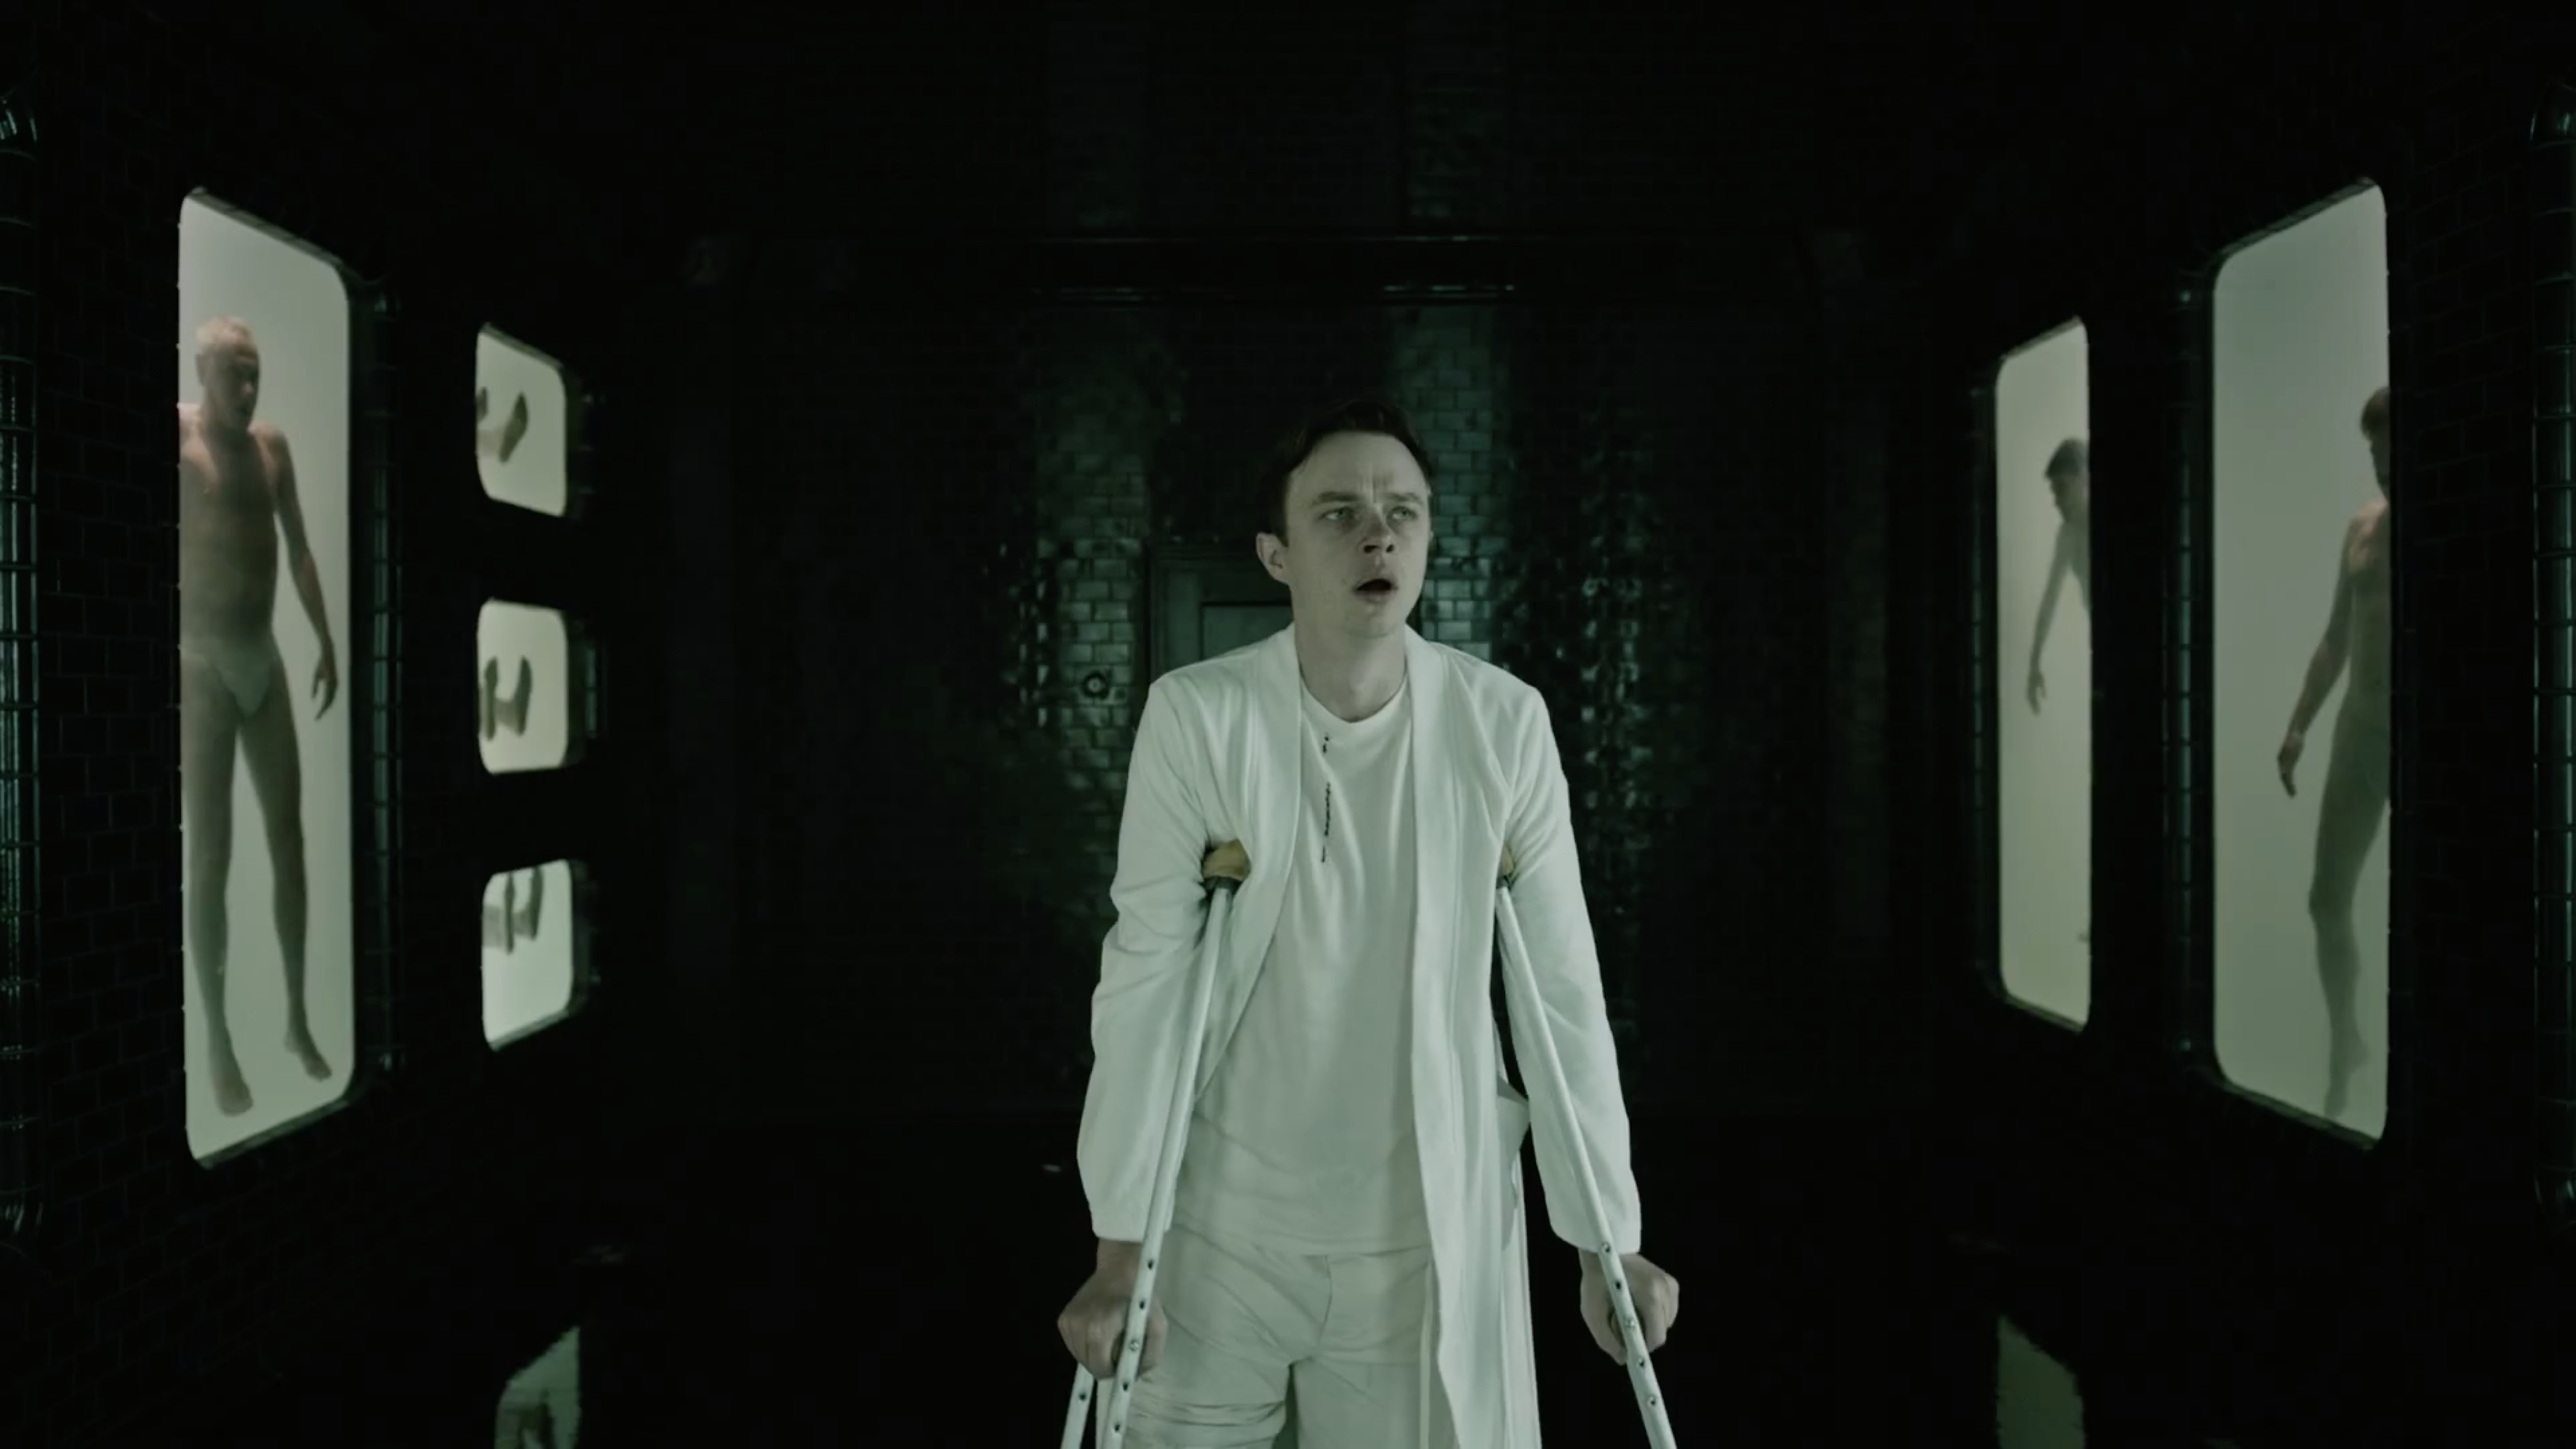 Dane DeHaan uncovers the experiments being at the institute in A Cure for Wellness (2016)